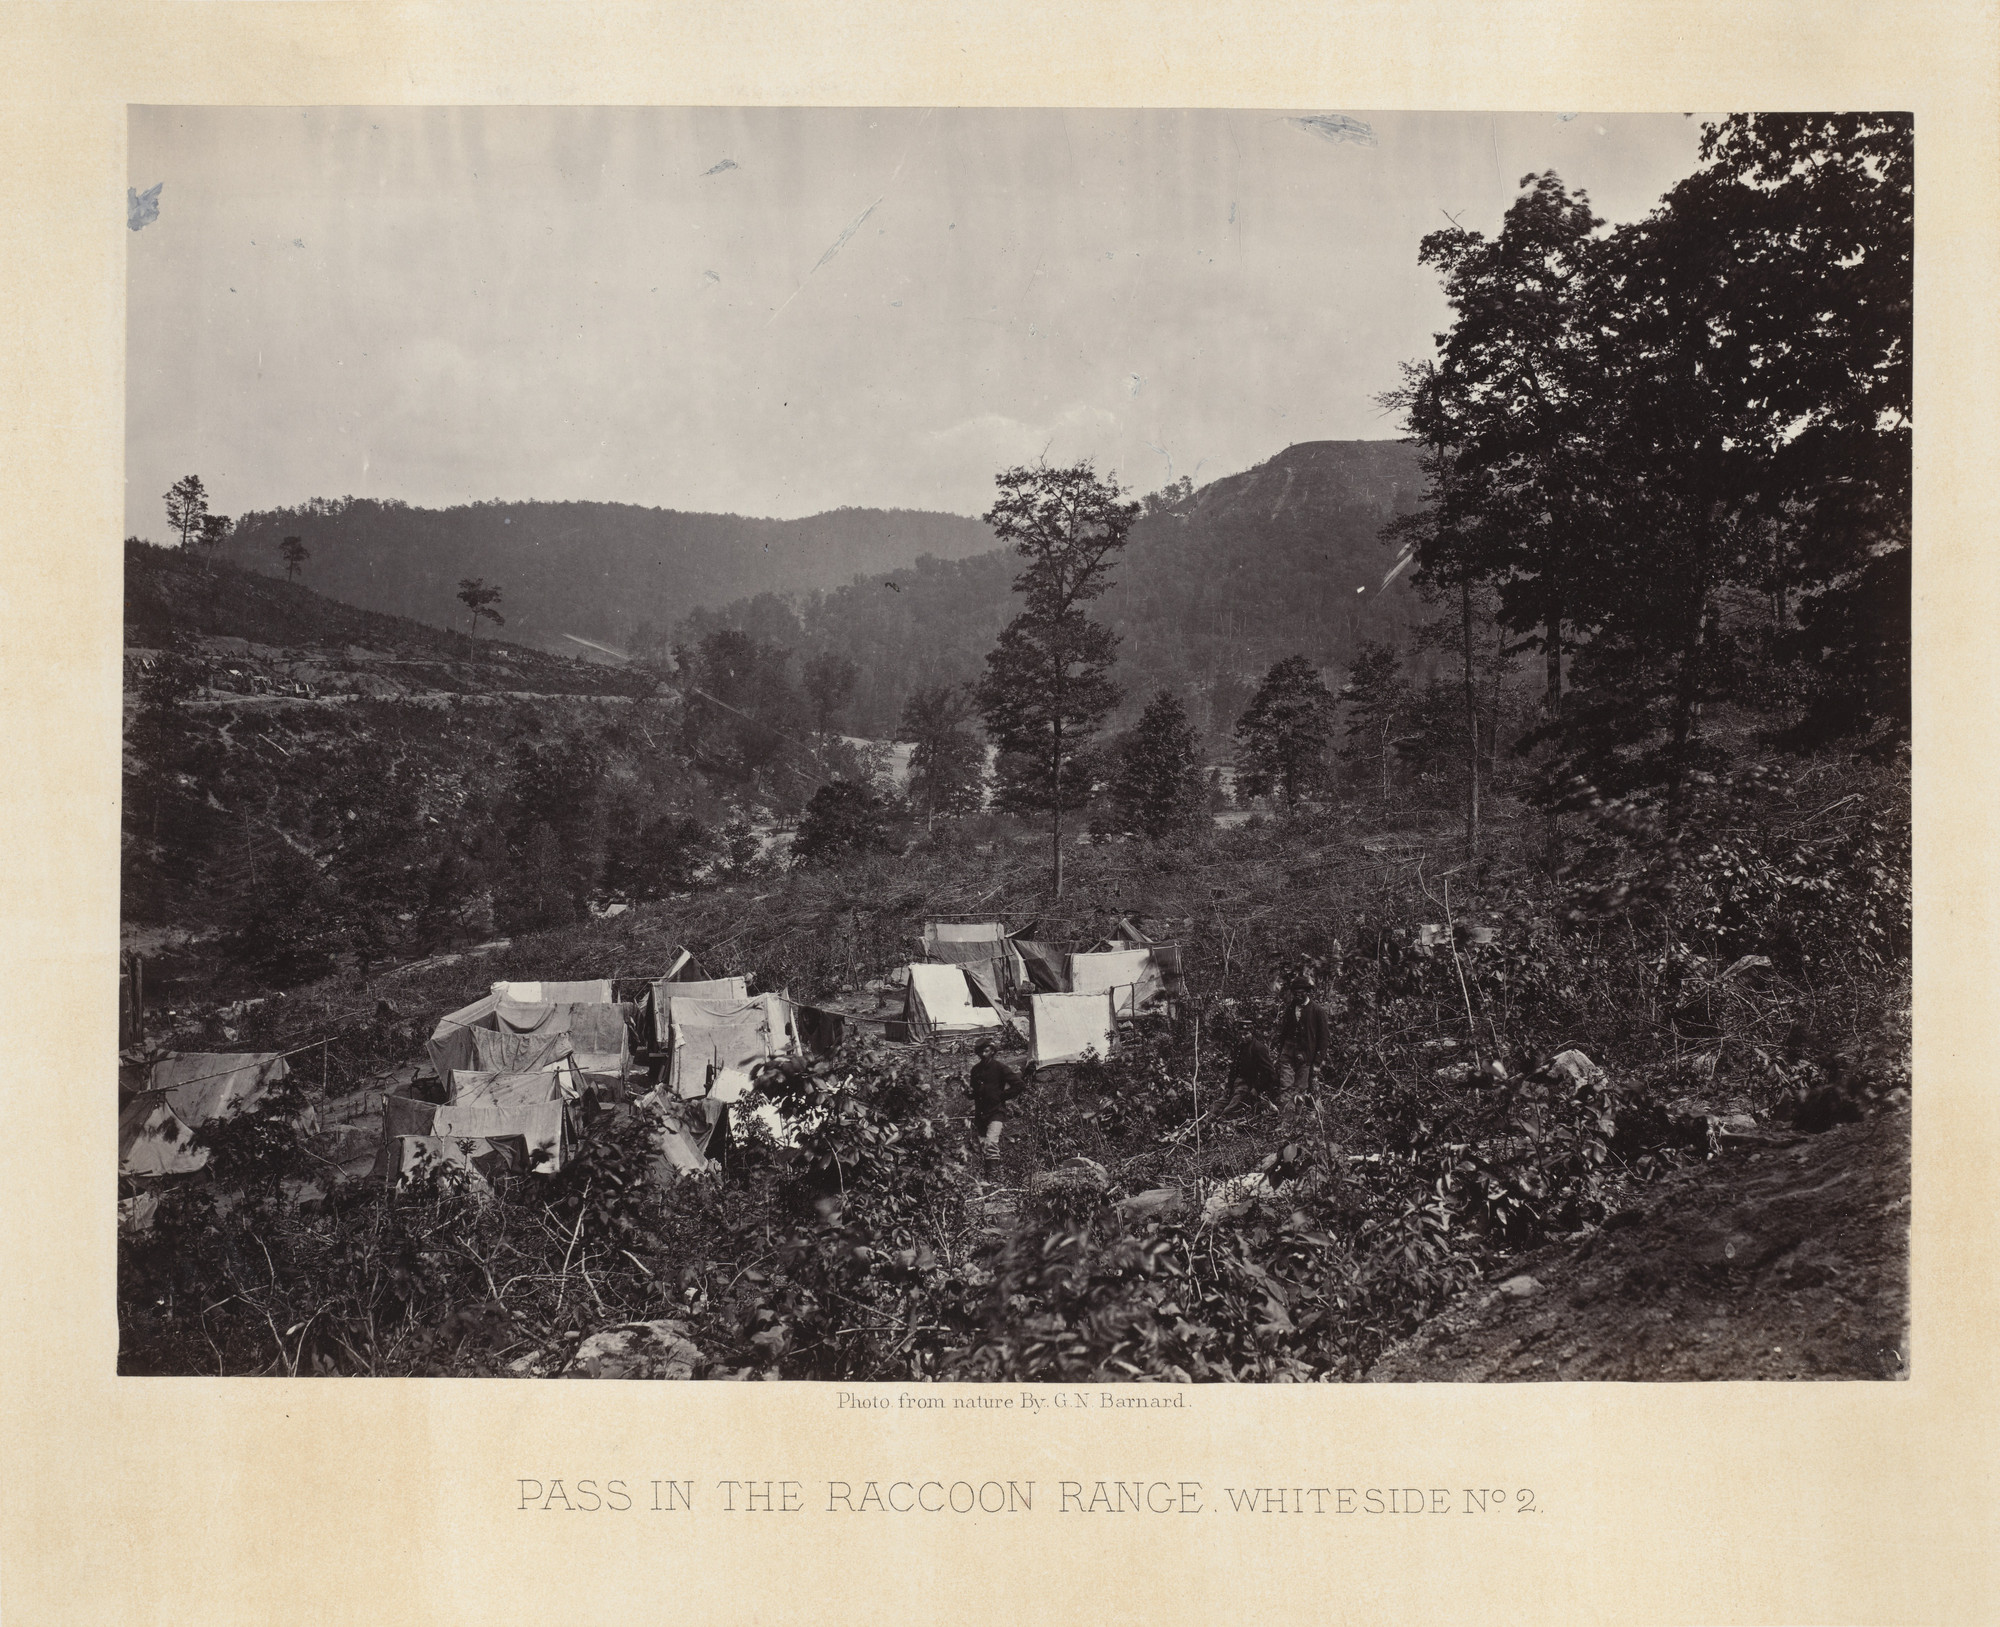 George Barnard. Pass in the Raccoon Range, No. 2 from the album Photographic Views of Sherman's Campaign. 1864-65